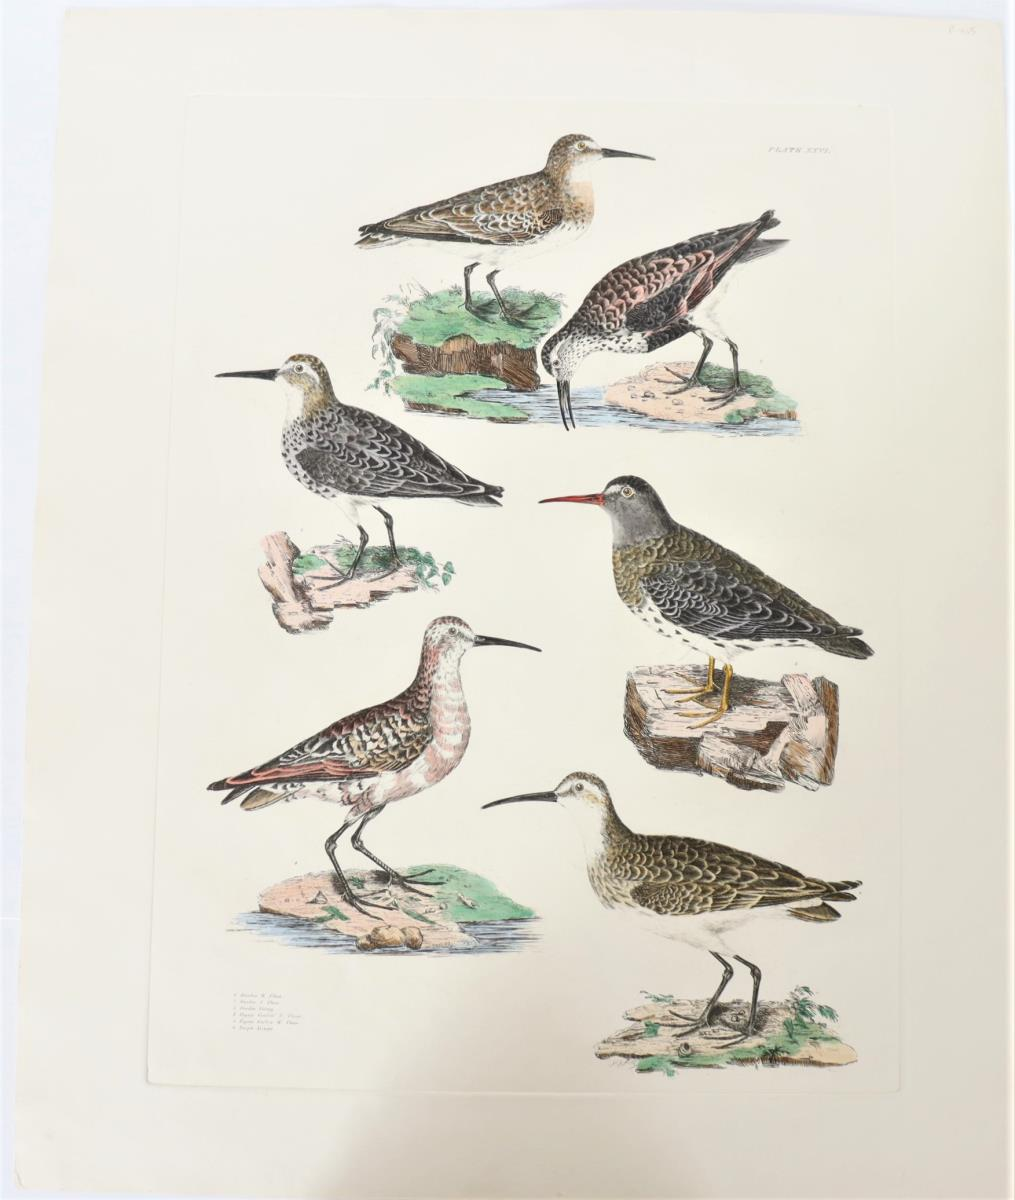 P J Selby, Hand-Colored Engraving, Dunlin, Curlew